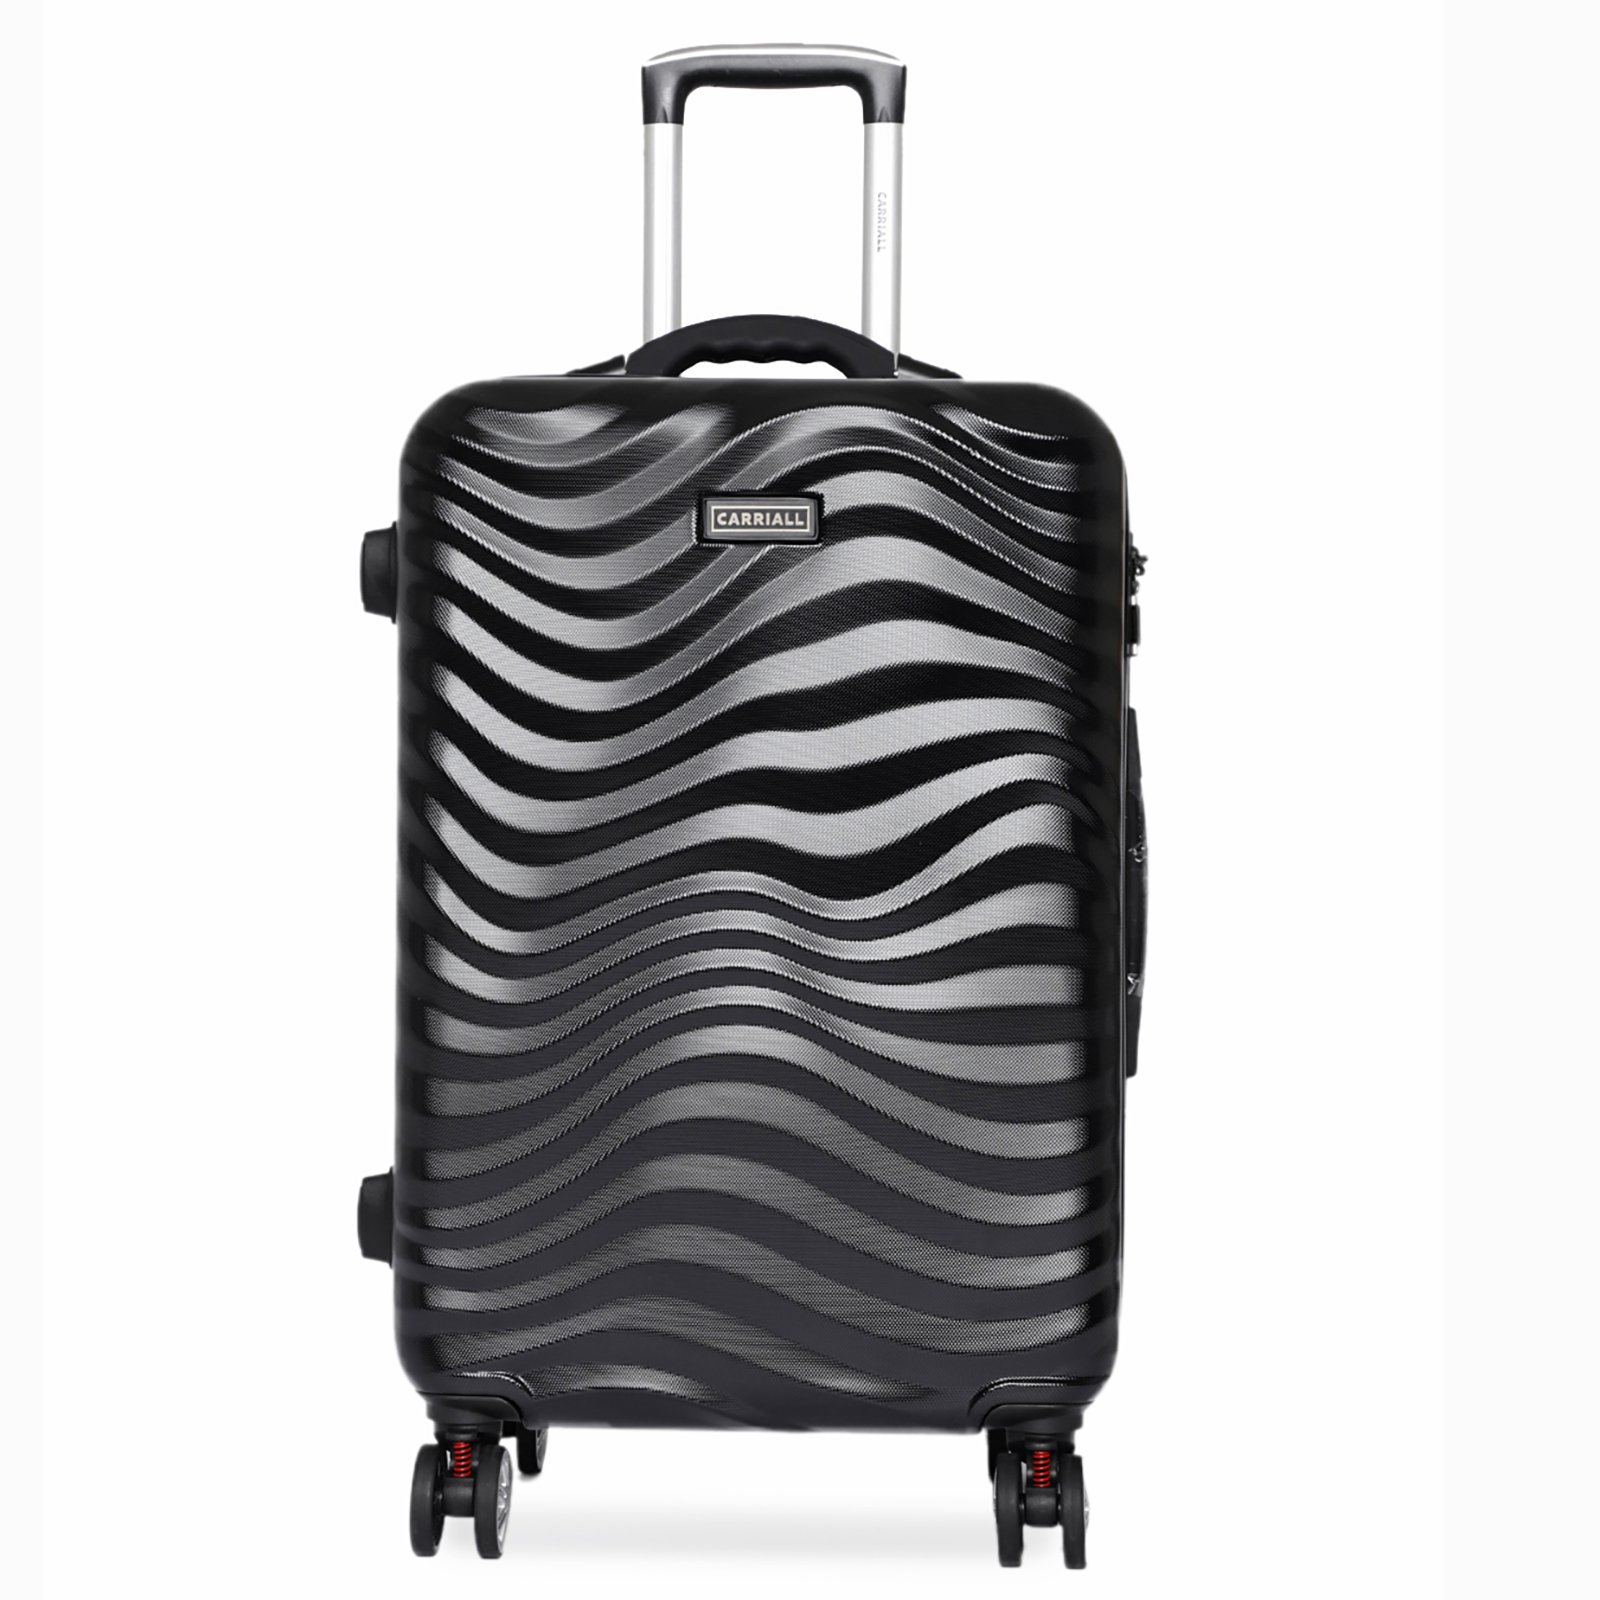 Carriall Ripple Polycarbonate Trolley Bag (Smart Anti-Theft, Built-In Weight Scale, CALM0002, Black)_1